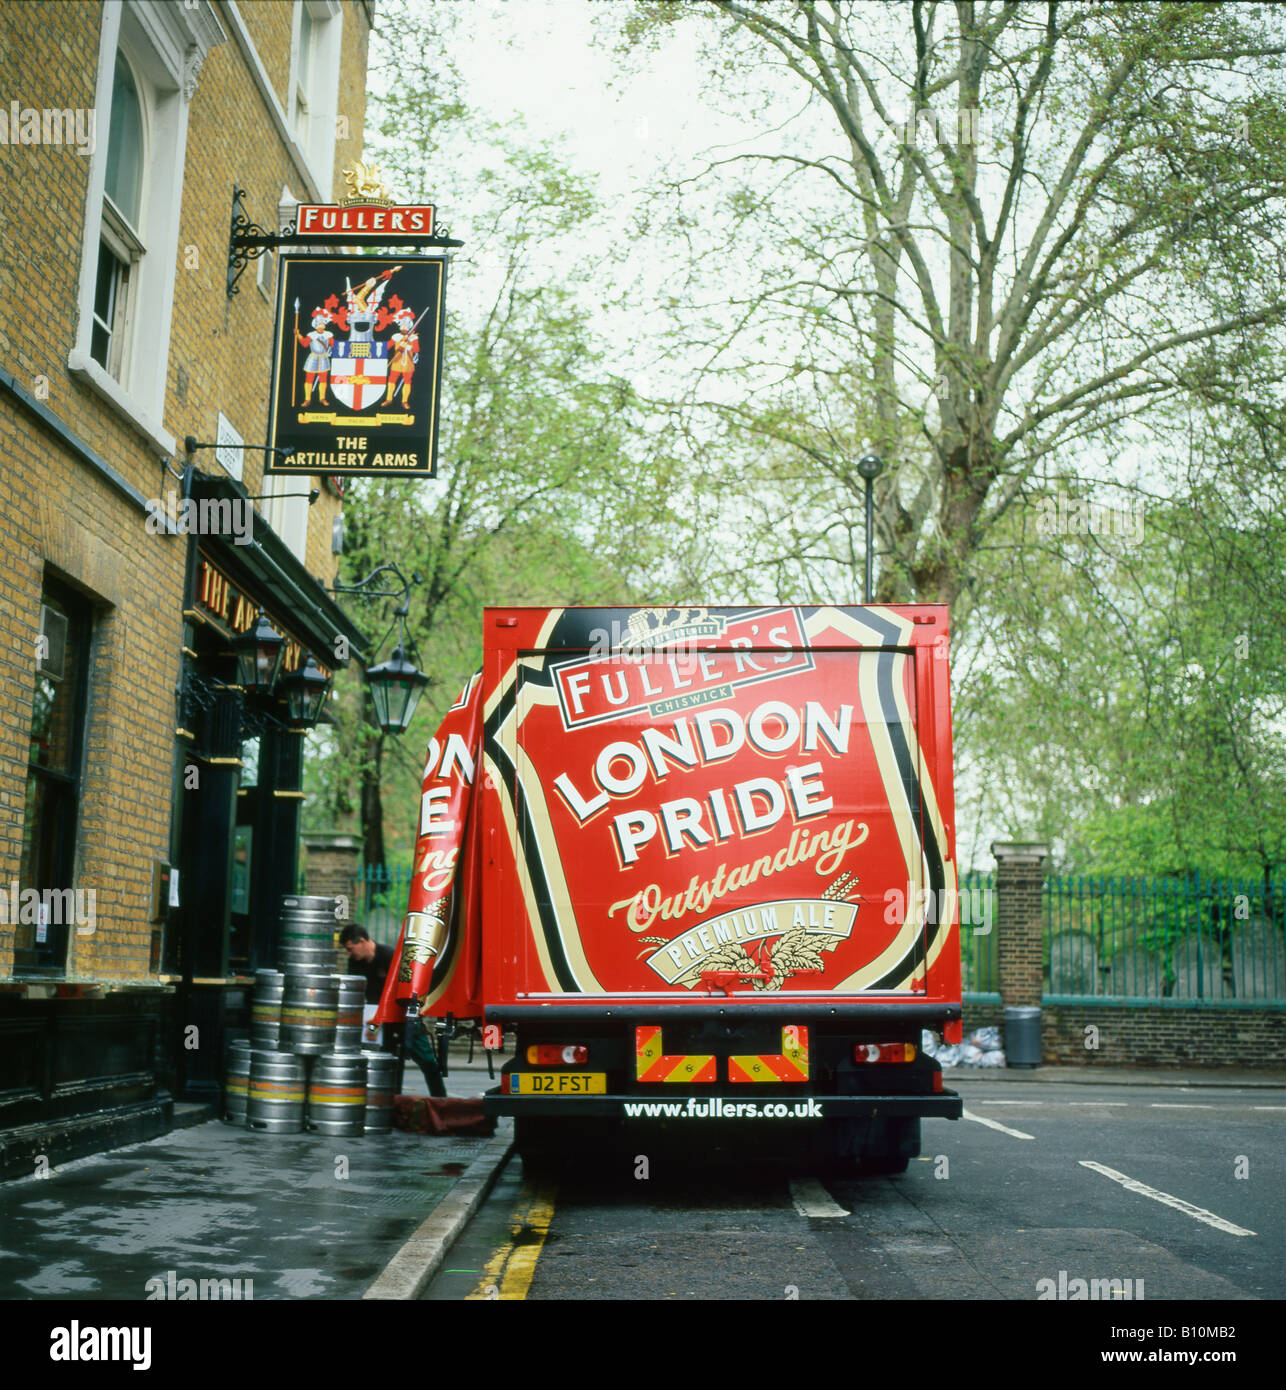 Fullers London Pride lorry delivering beer barrels to the Artillery Arms pub near Bunhill Fields central London - Stock Image